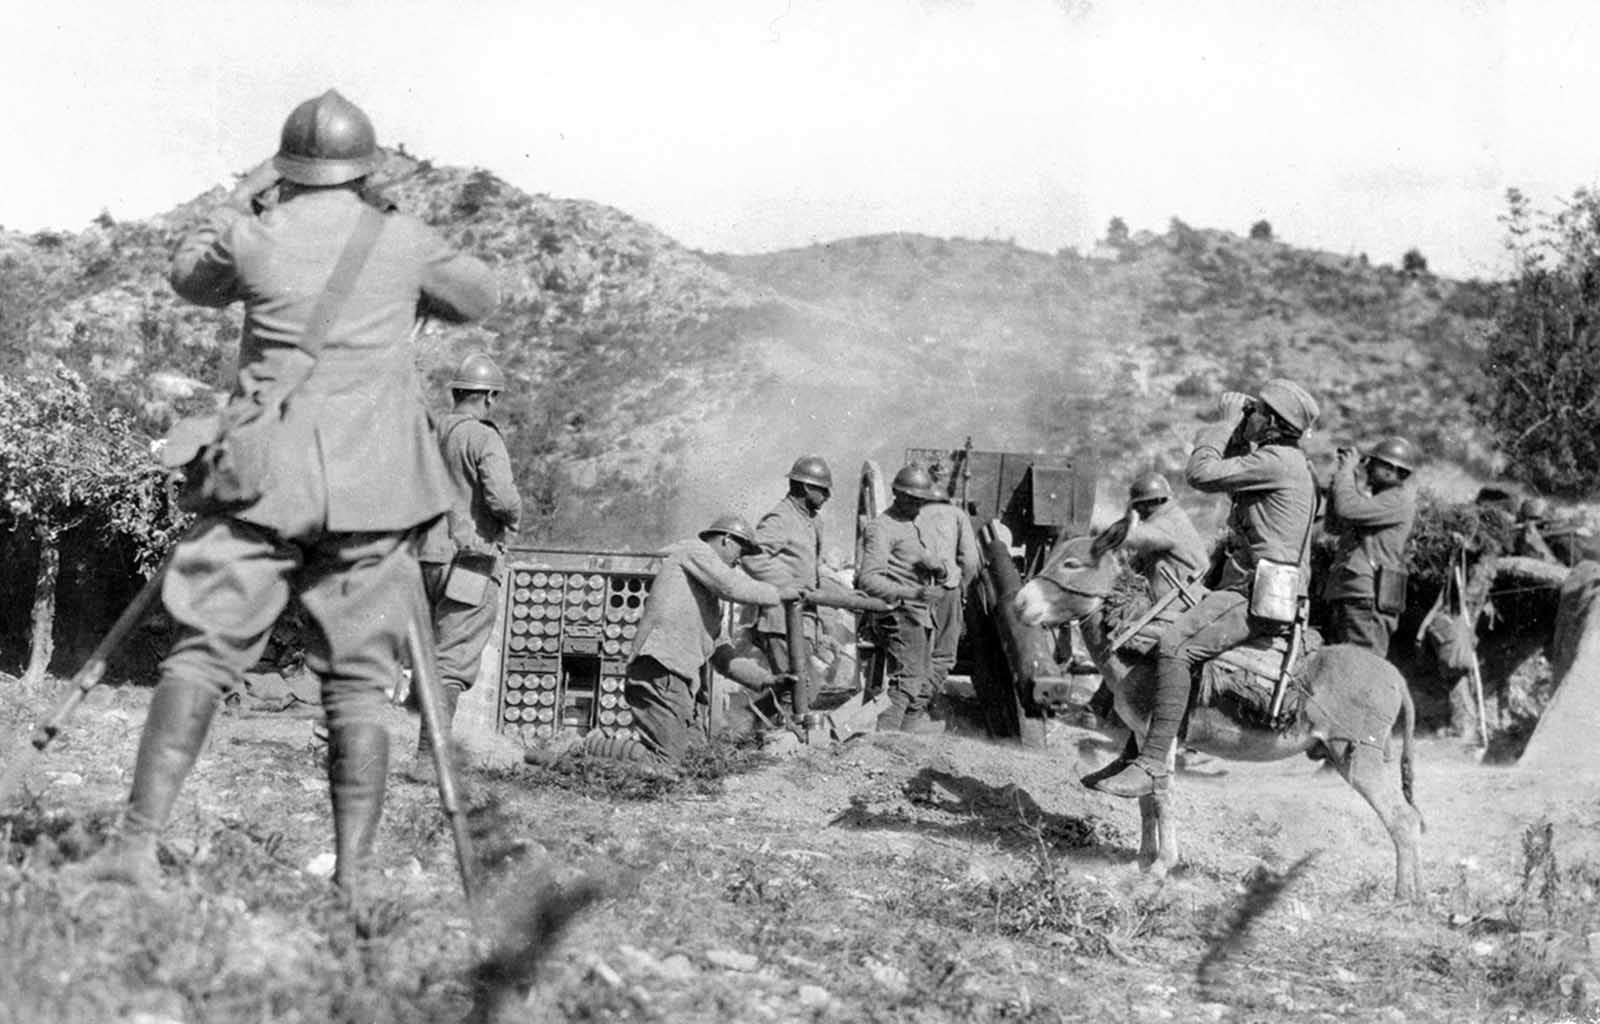 Serbian artillery in action on the Salonika front in December of 1917.